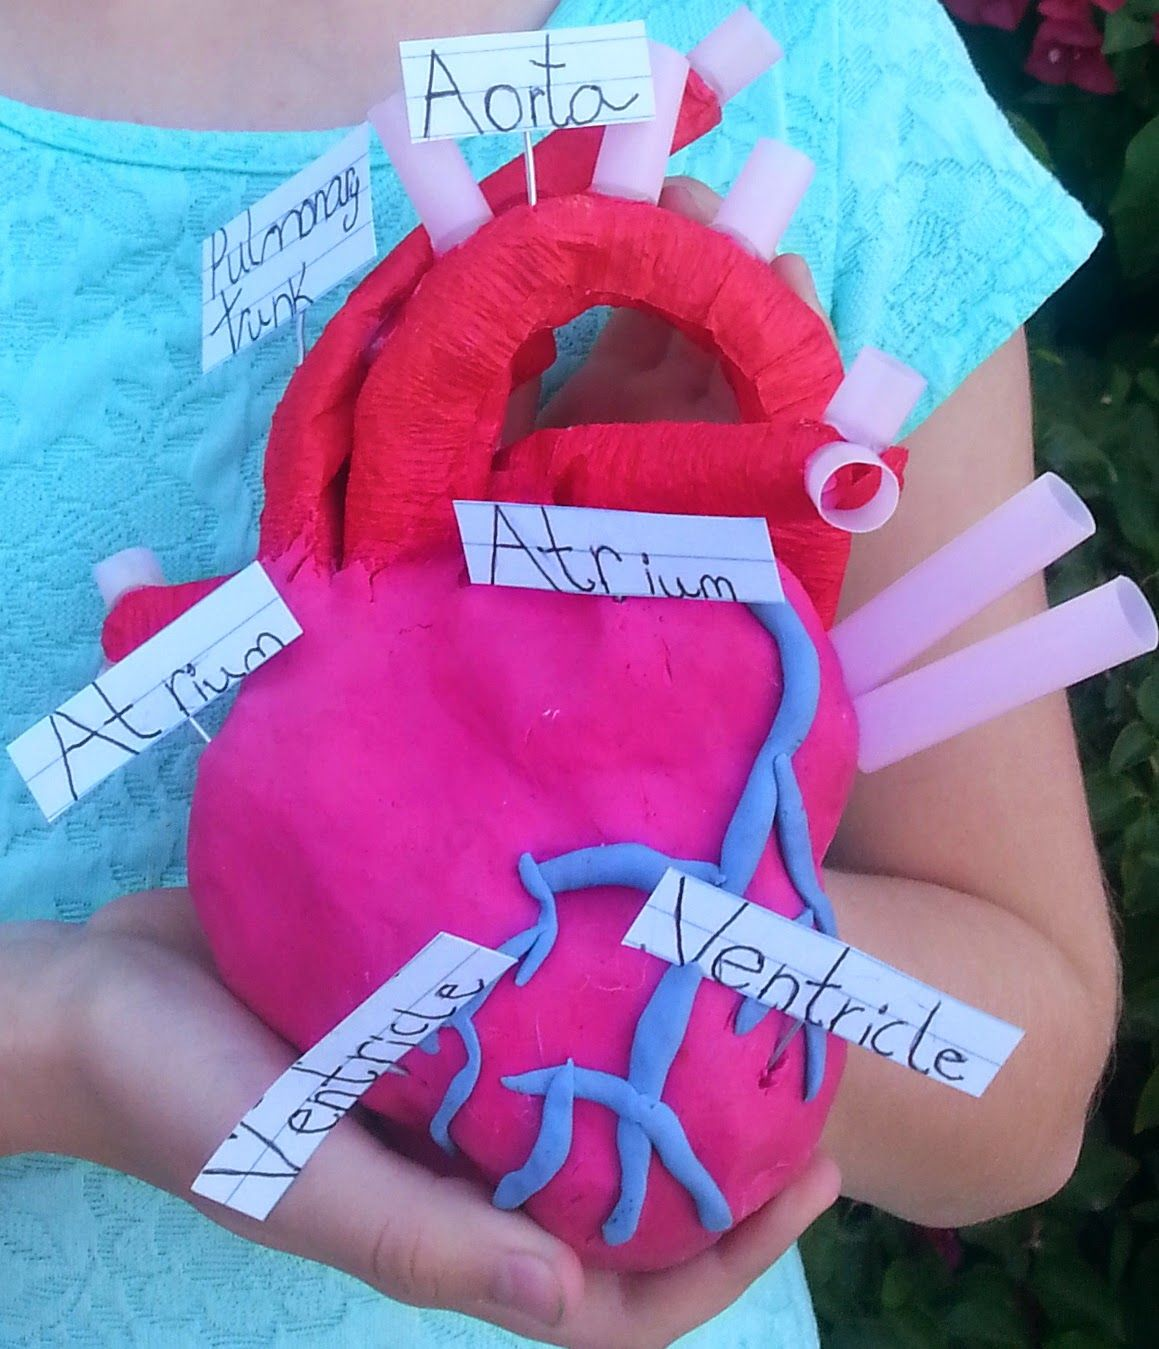 Human Heart On Pinterest Anatomy Anatomical And